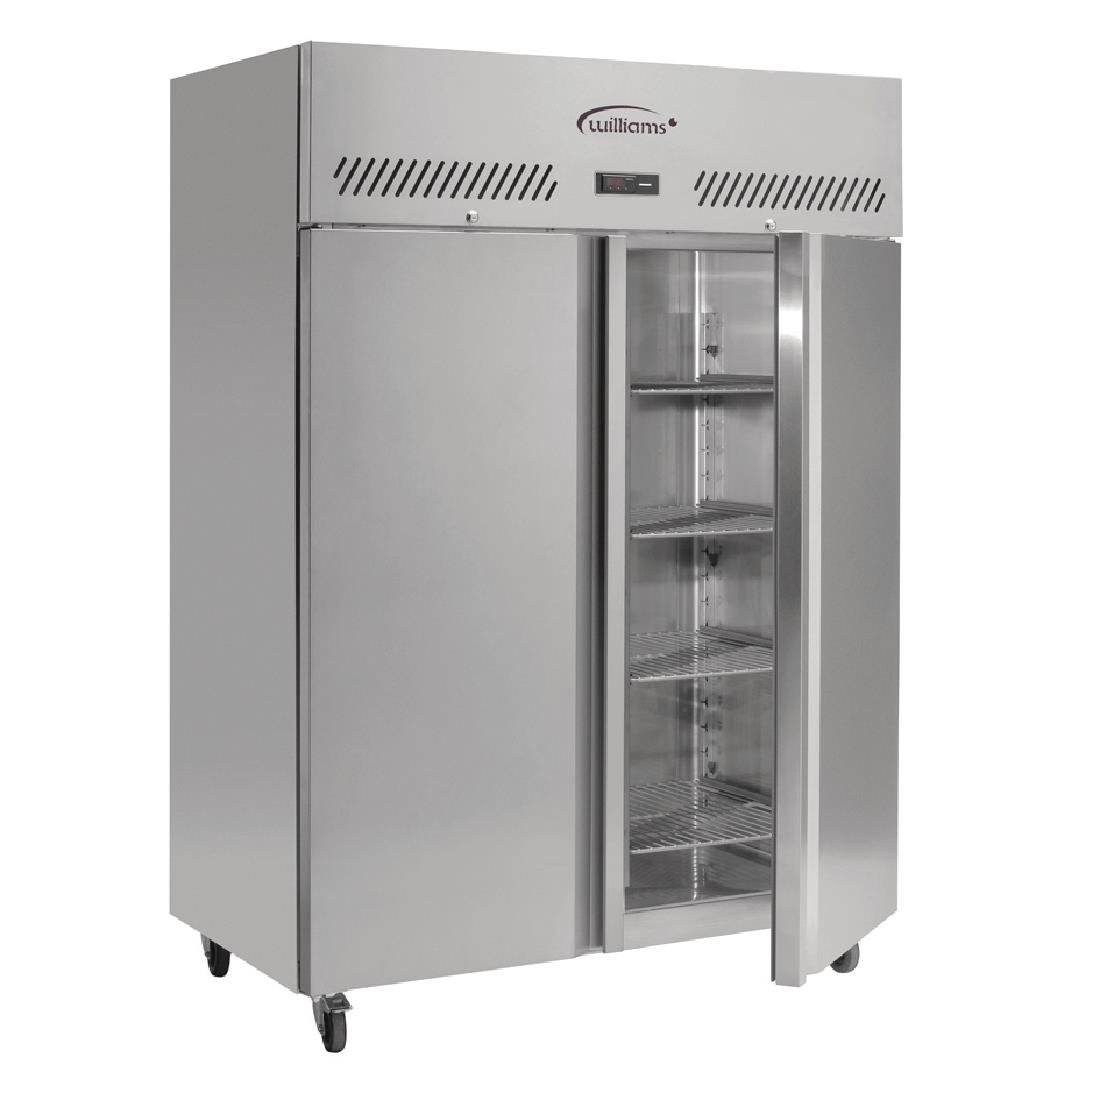 Superbe ... Williams Upright Cabinet Double Door Freezer 1273ltr